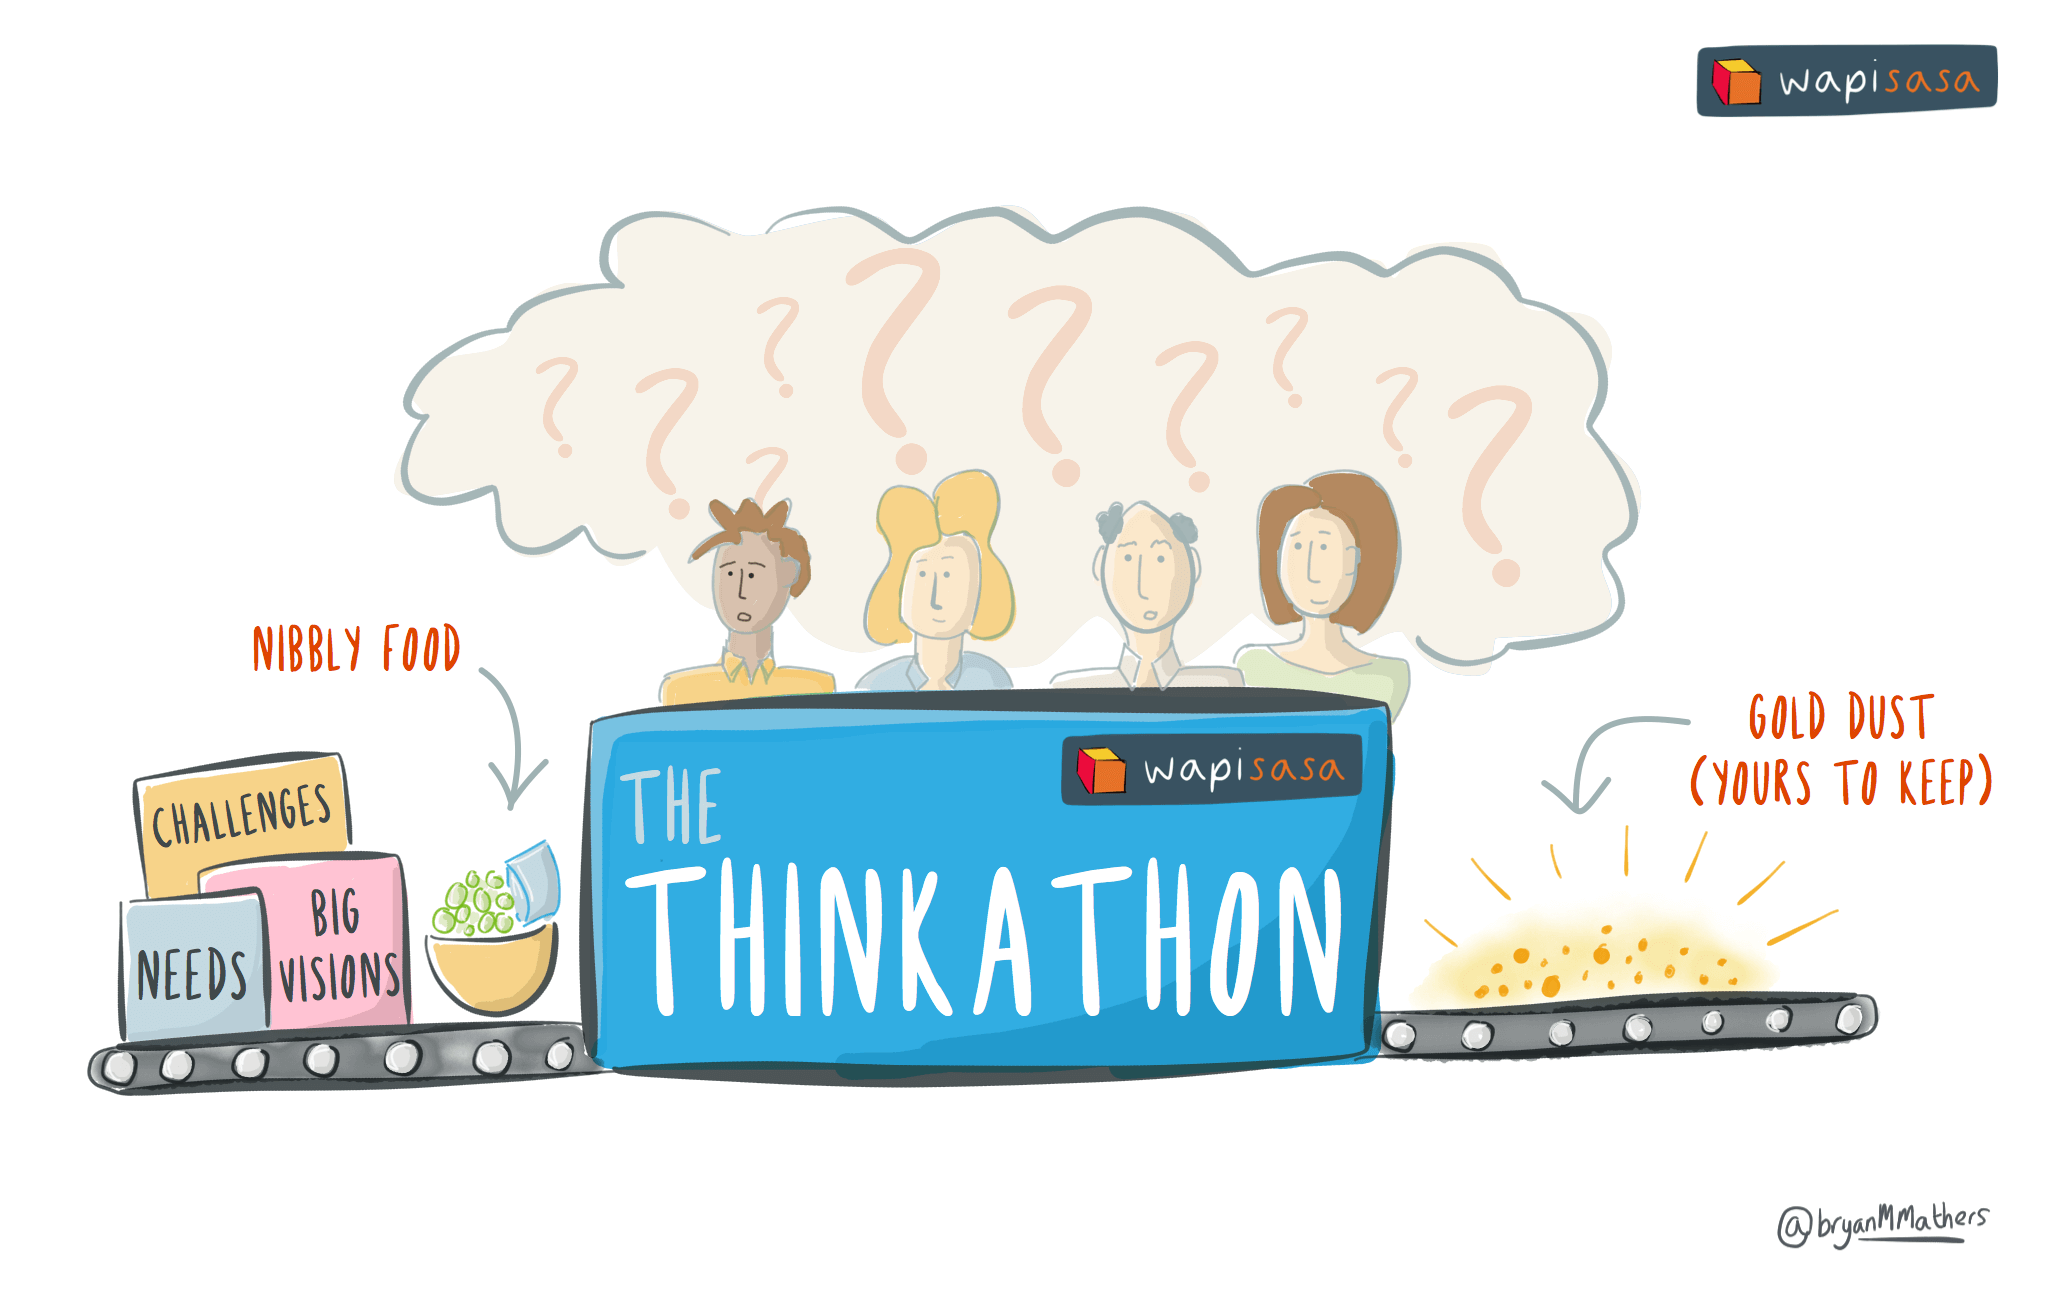 The Thinkathon